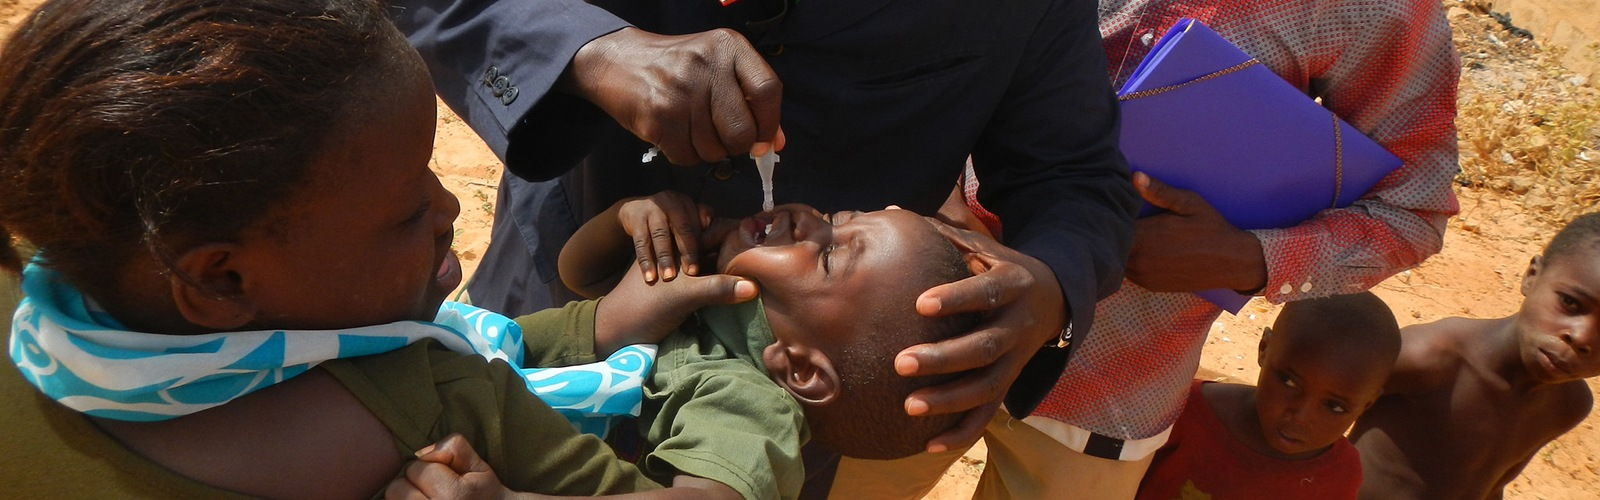 Low-cost rotavirus vaccine could prevent thousands of deaths